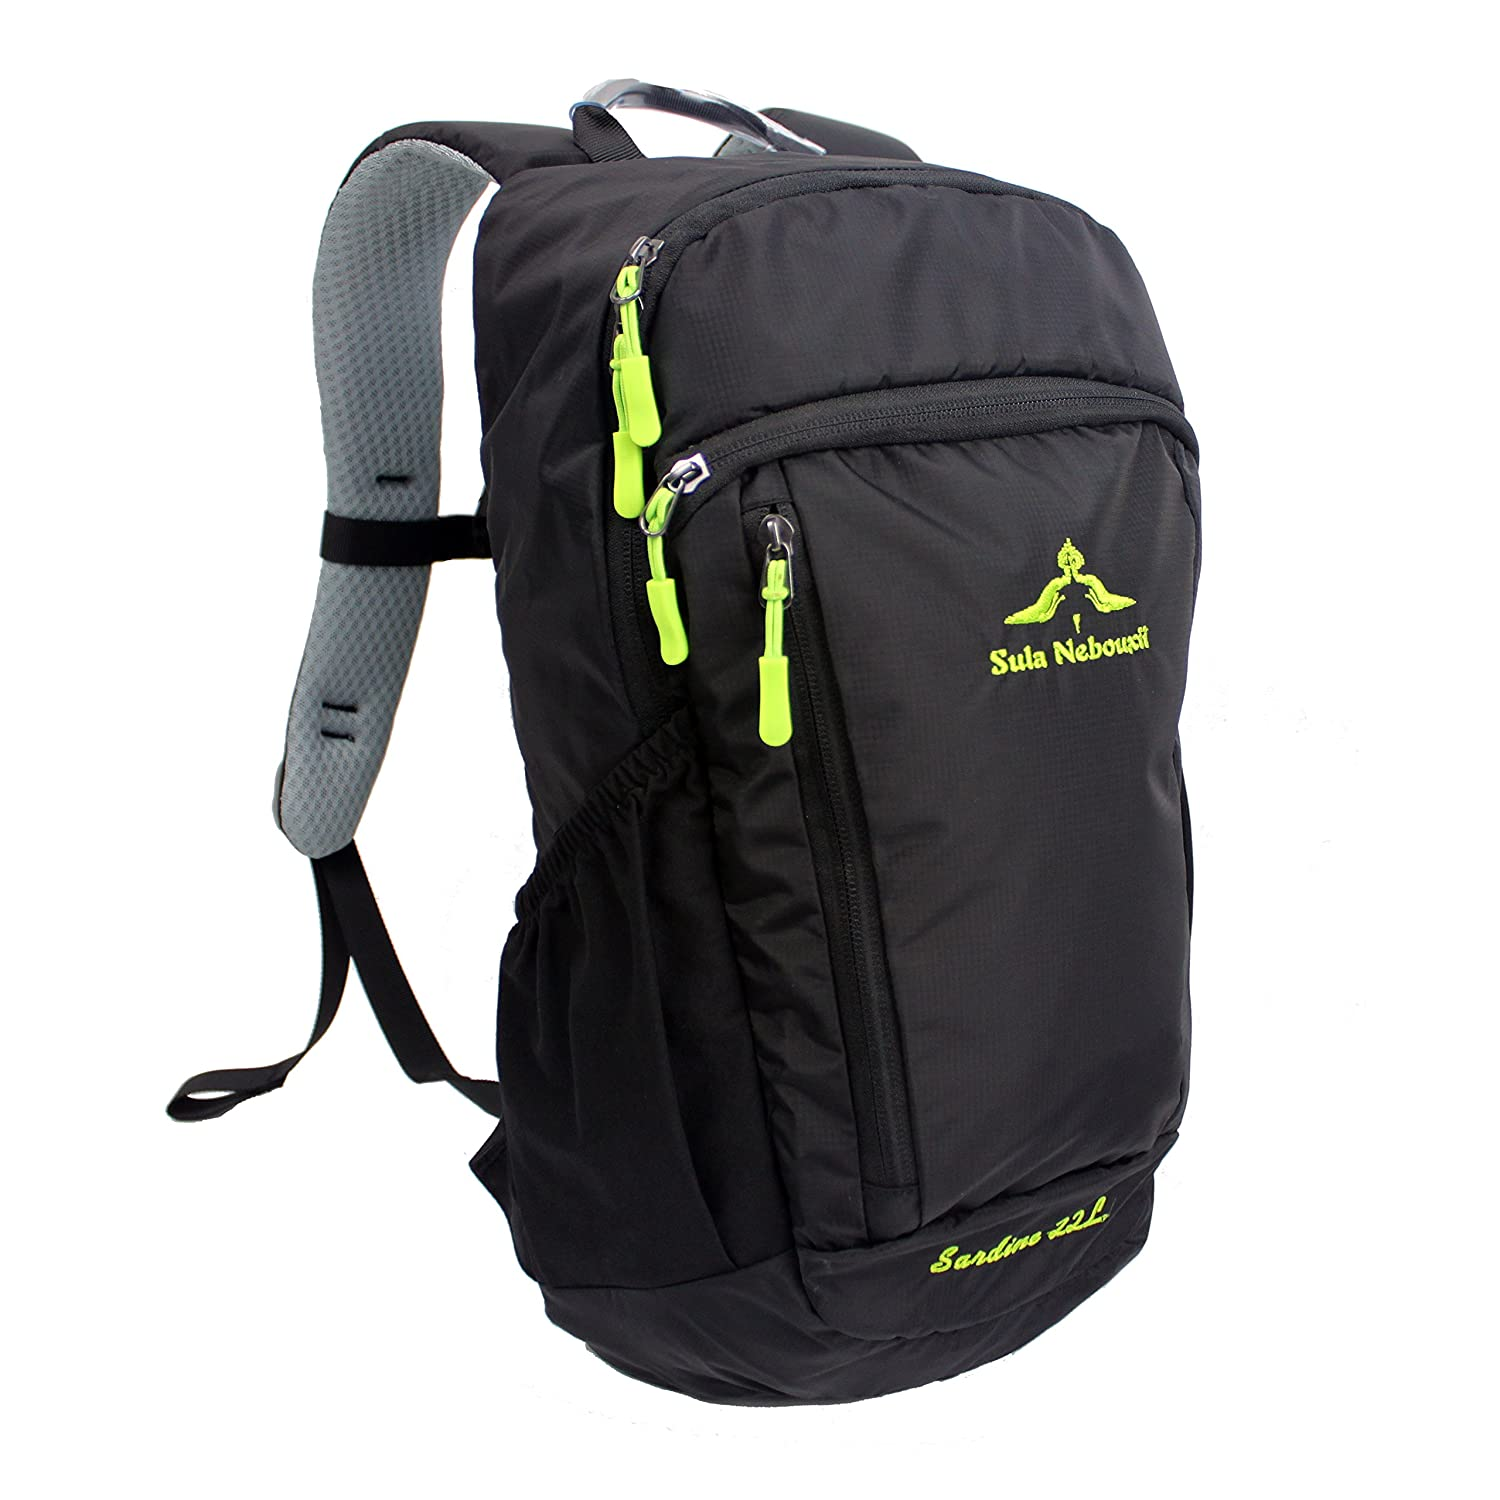 Amazon.com  Small Travel Backpack Hiking Daypack 22L - Laptop Compartment  Rain Cover  Sports   Outdoors